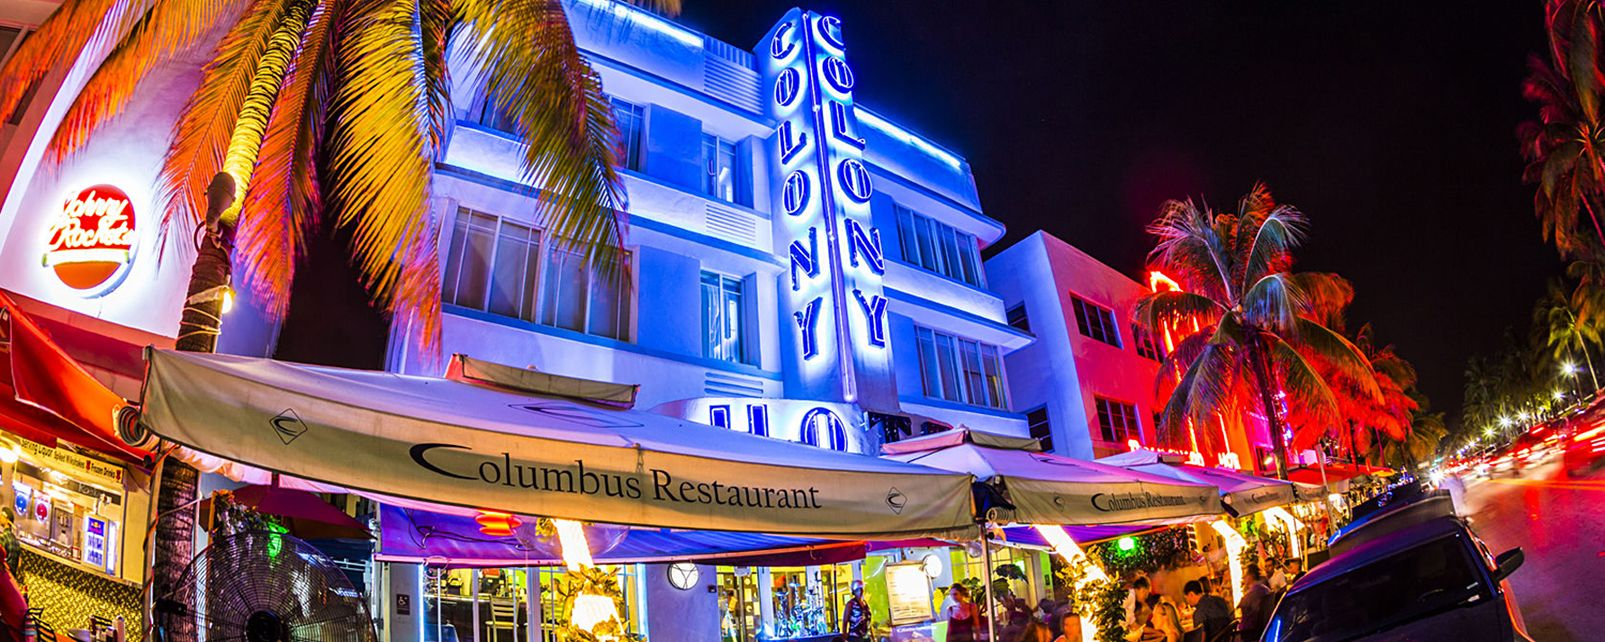 Ocean Drive et South Beach , Le temple de l'art déco , Etats-Unis